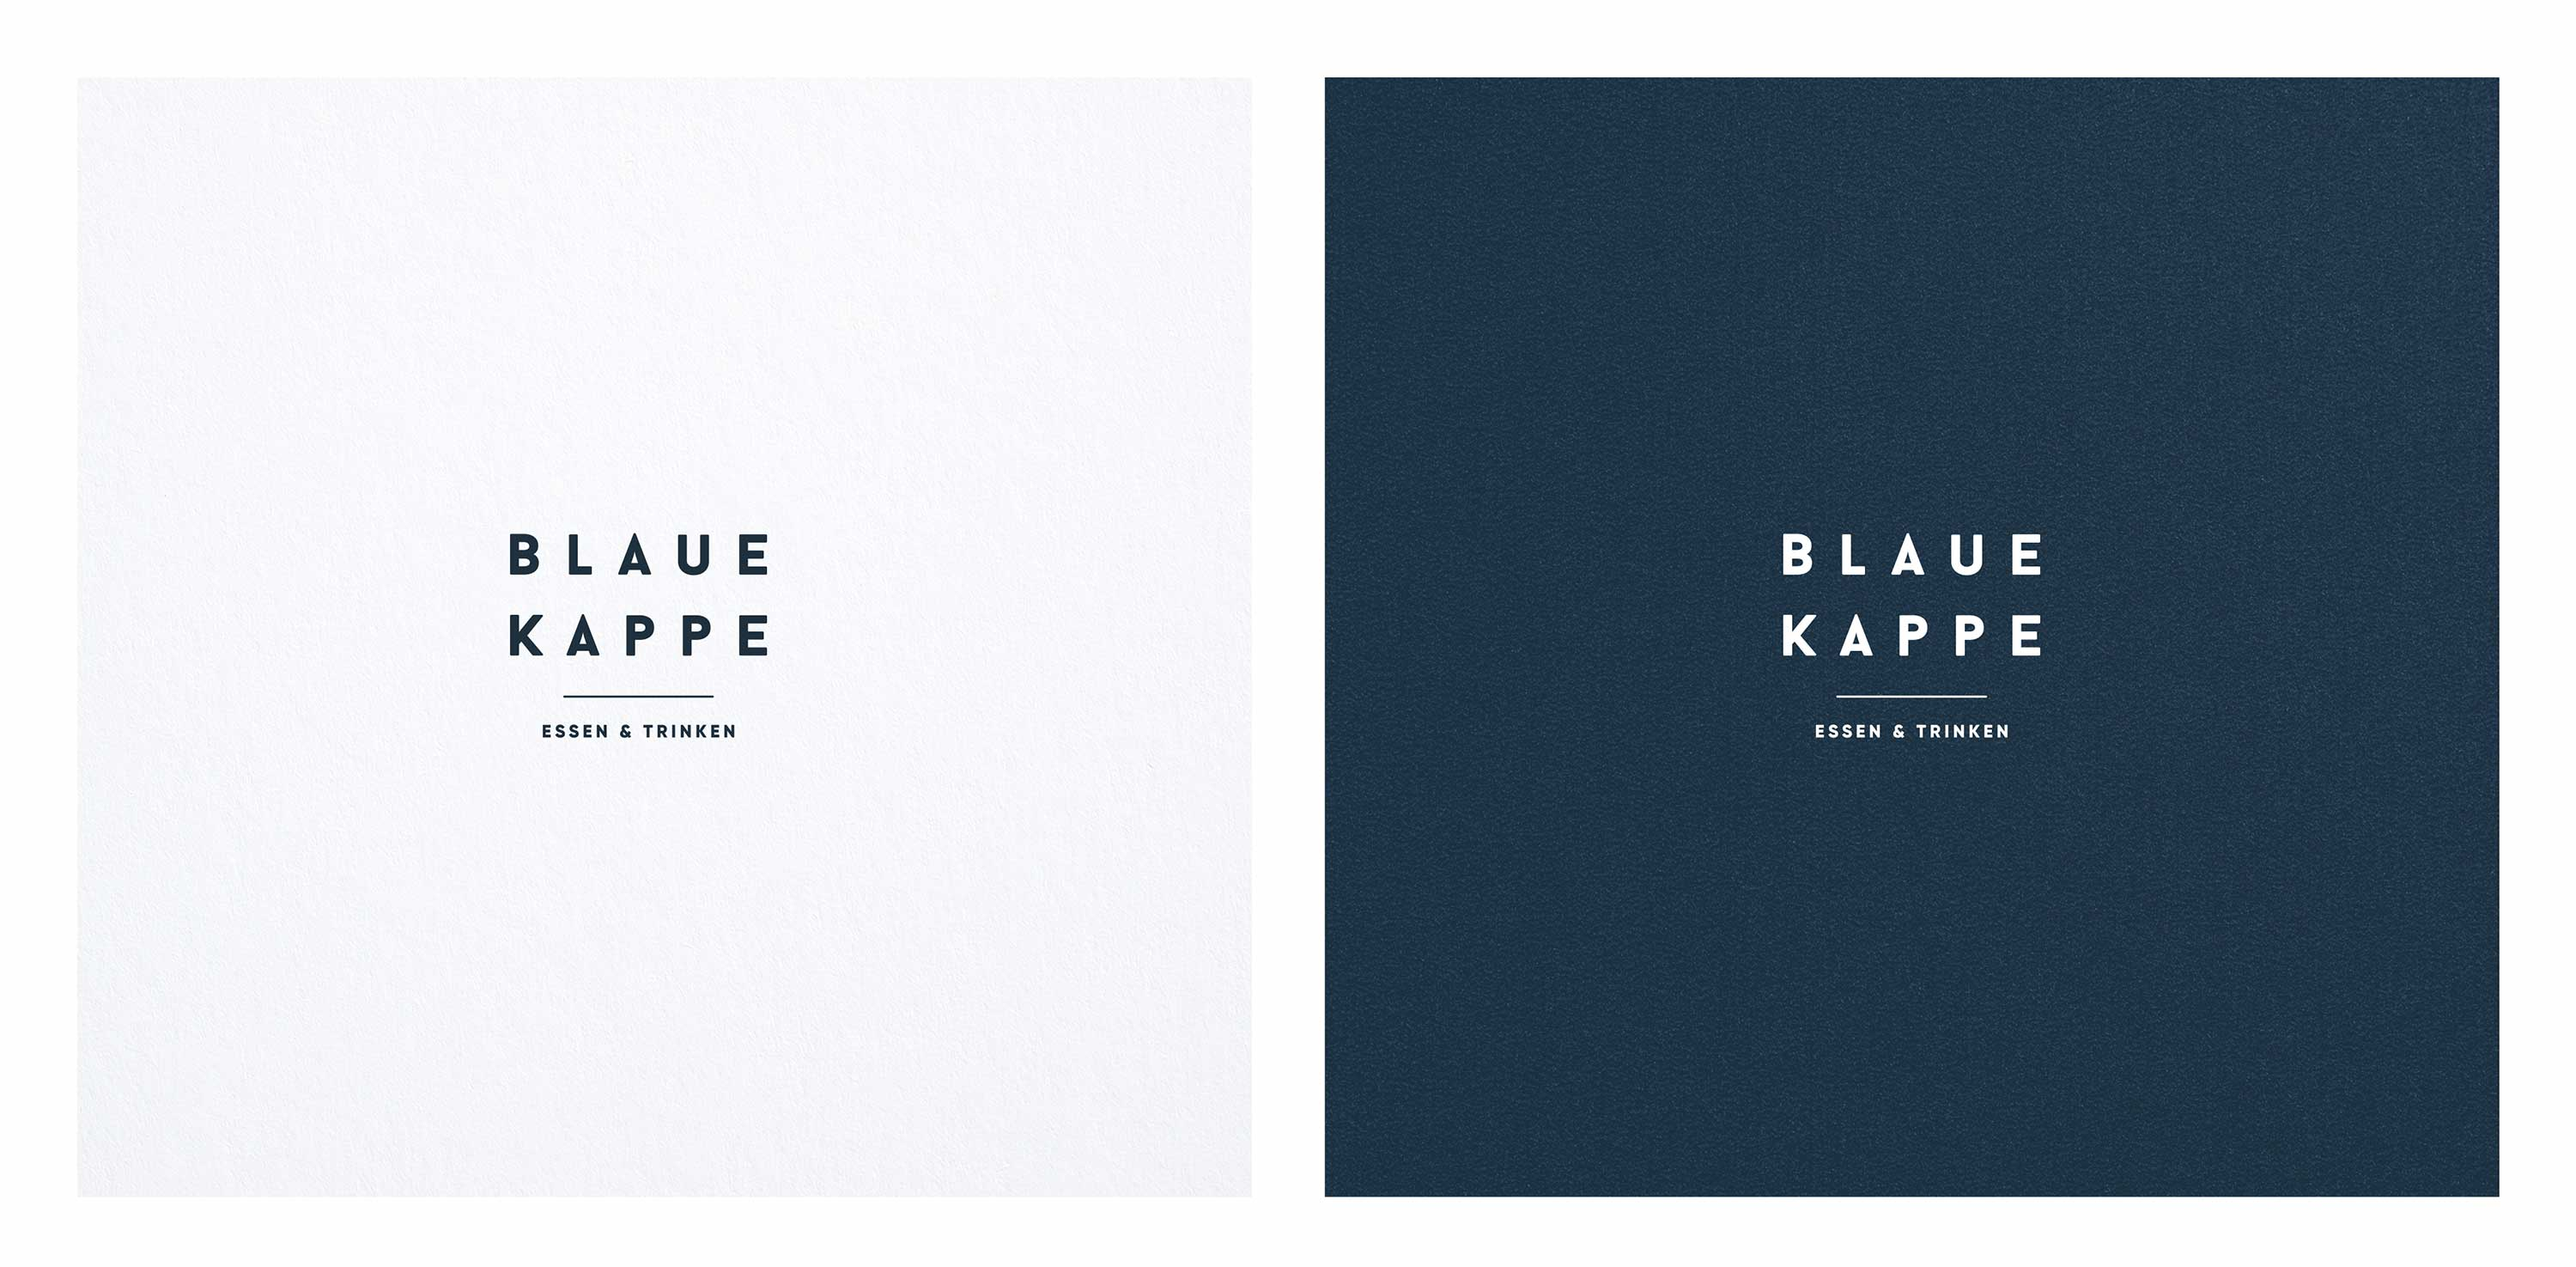 01-blaue-kappe-restaurant-augsburg-essen-trinken-corporate-design-branding-website-logo